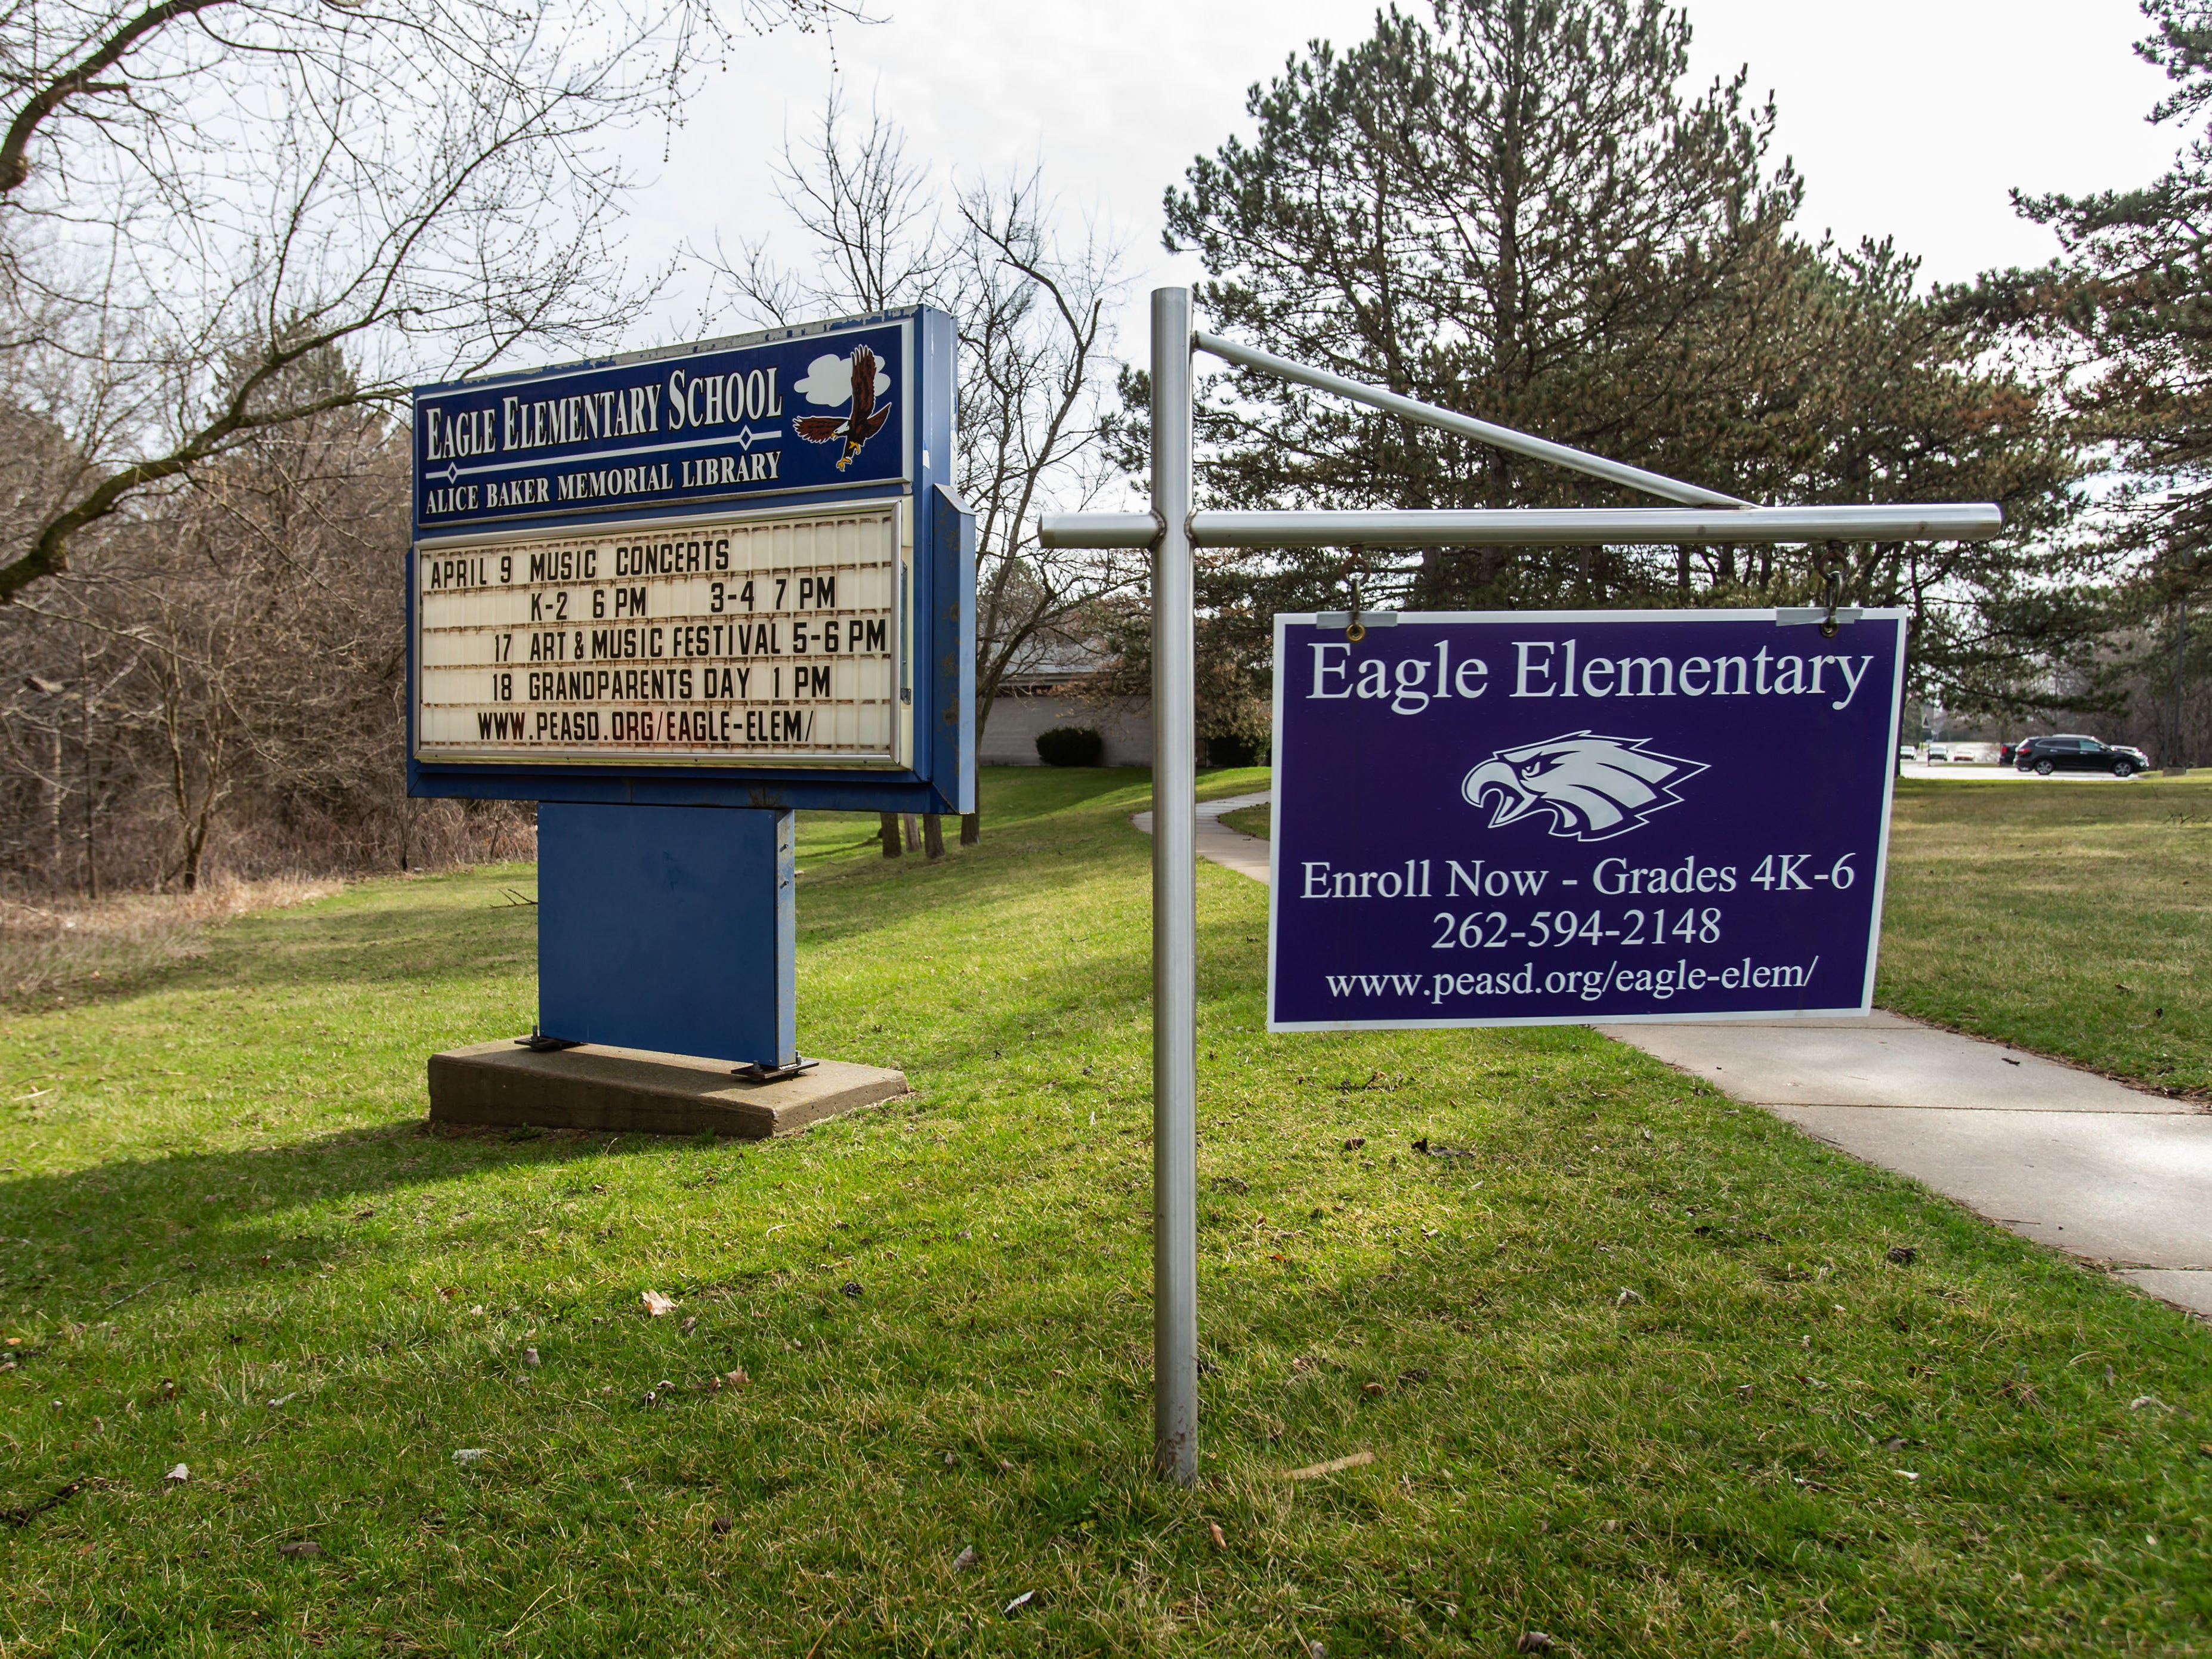 The entrance to Eagle Elementary School as seen on Tuesday, April 16, 2019.